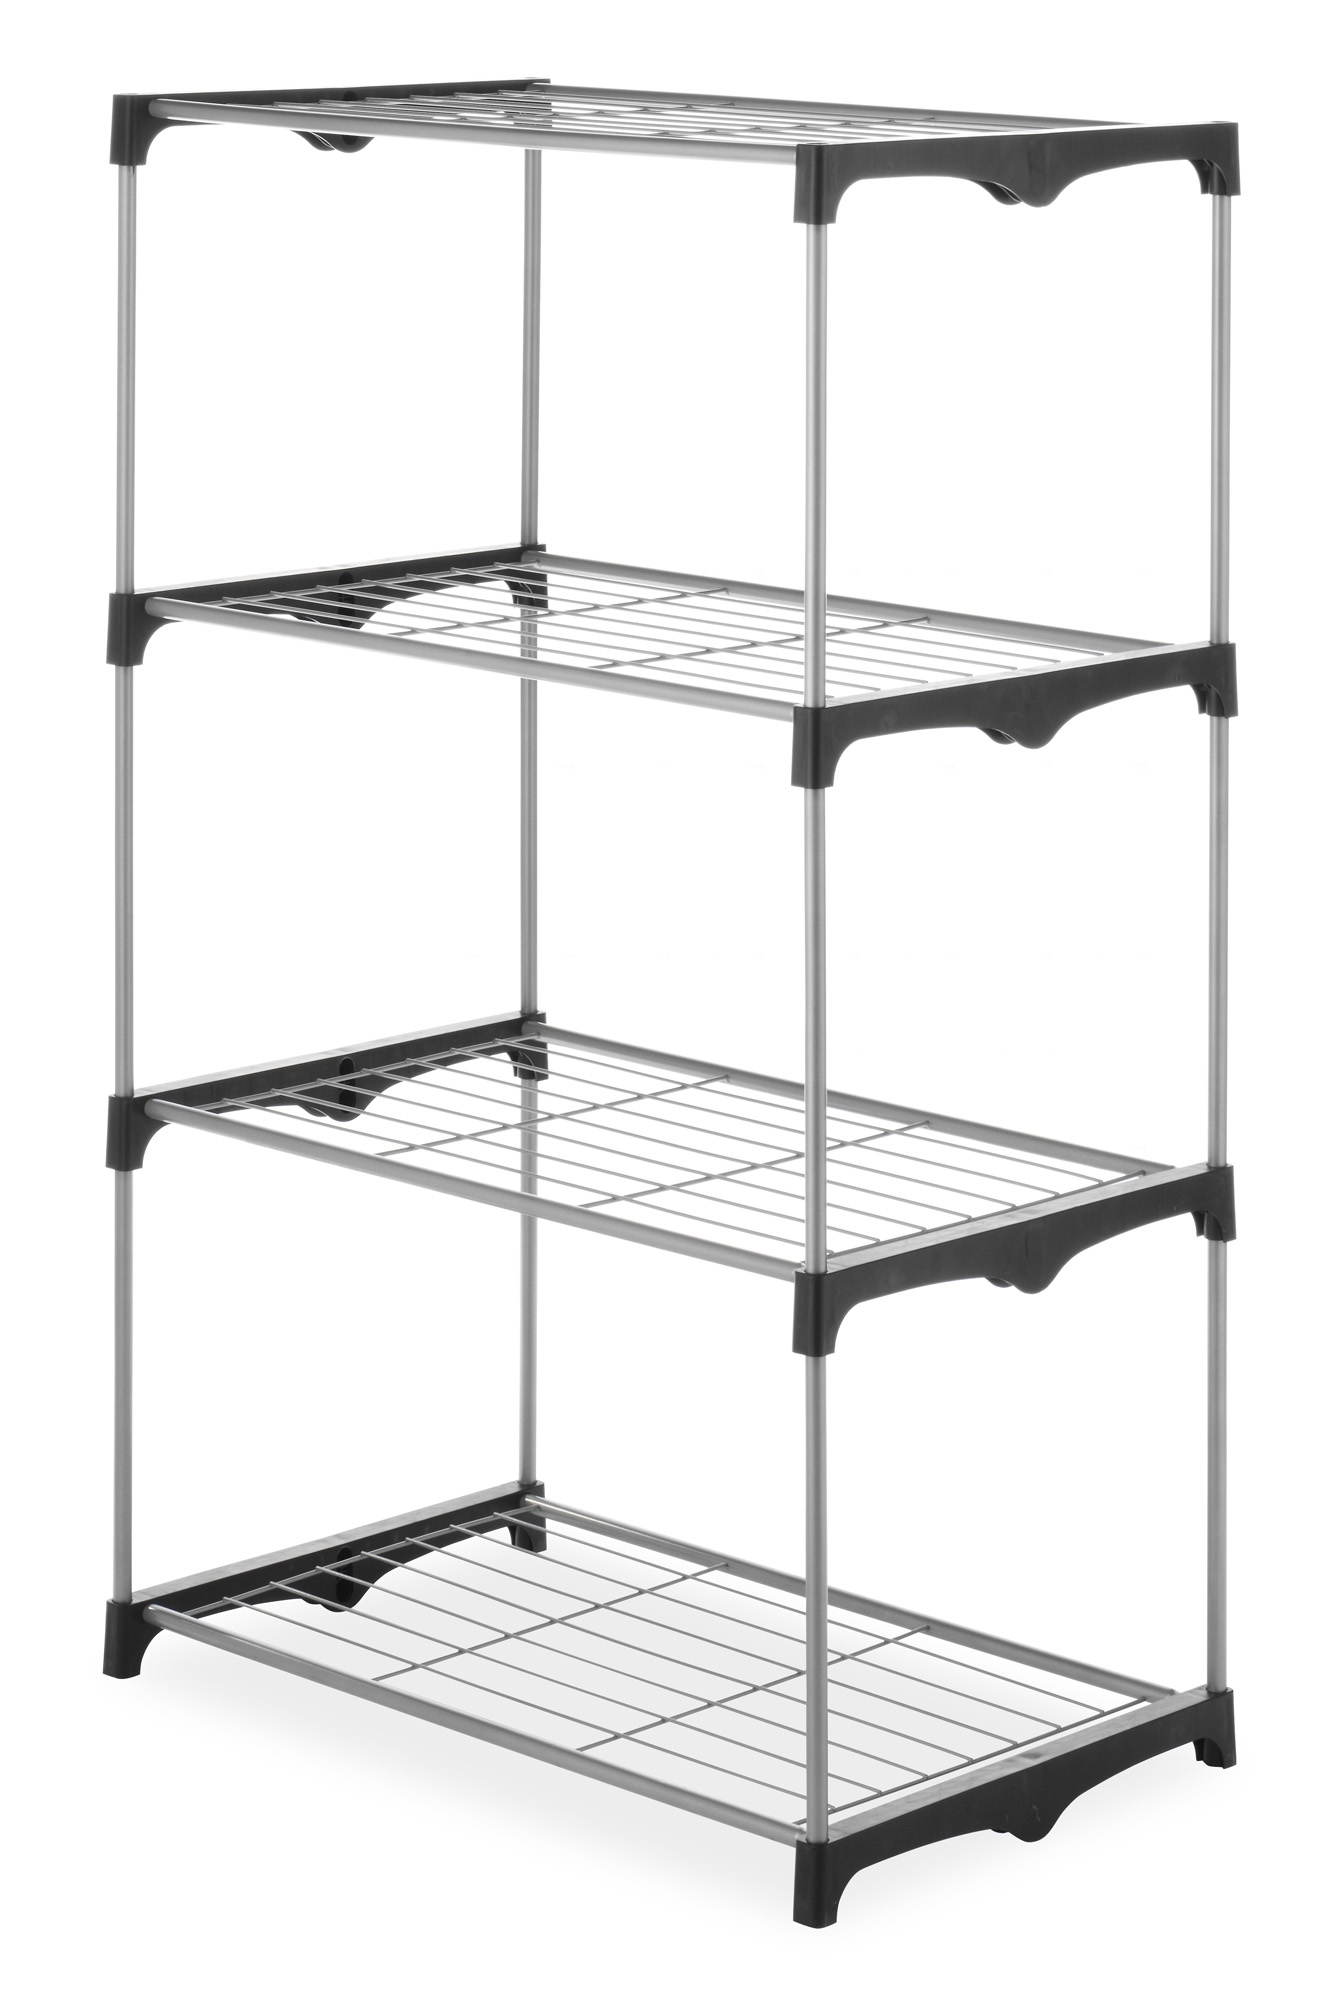 Walmart Shelving | Book Shelves Walmart | Cheap Shelves Walmart